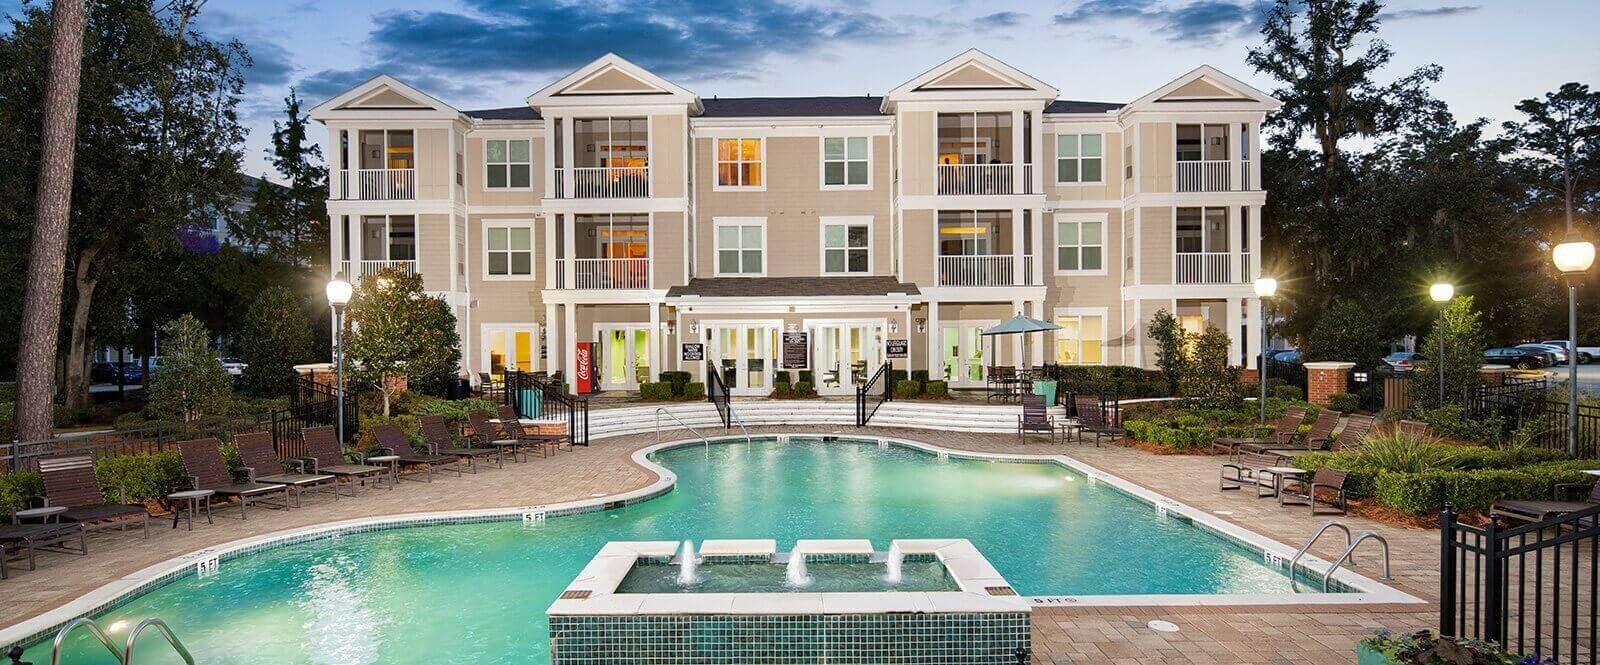 Swimming Pool with Sunning Deck at Abberly at West Ashley Apartment Homes by HHHunt, Charleston, 29414